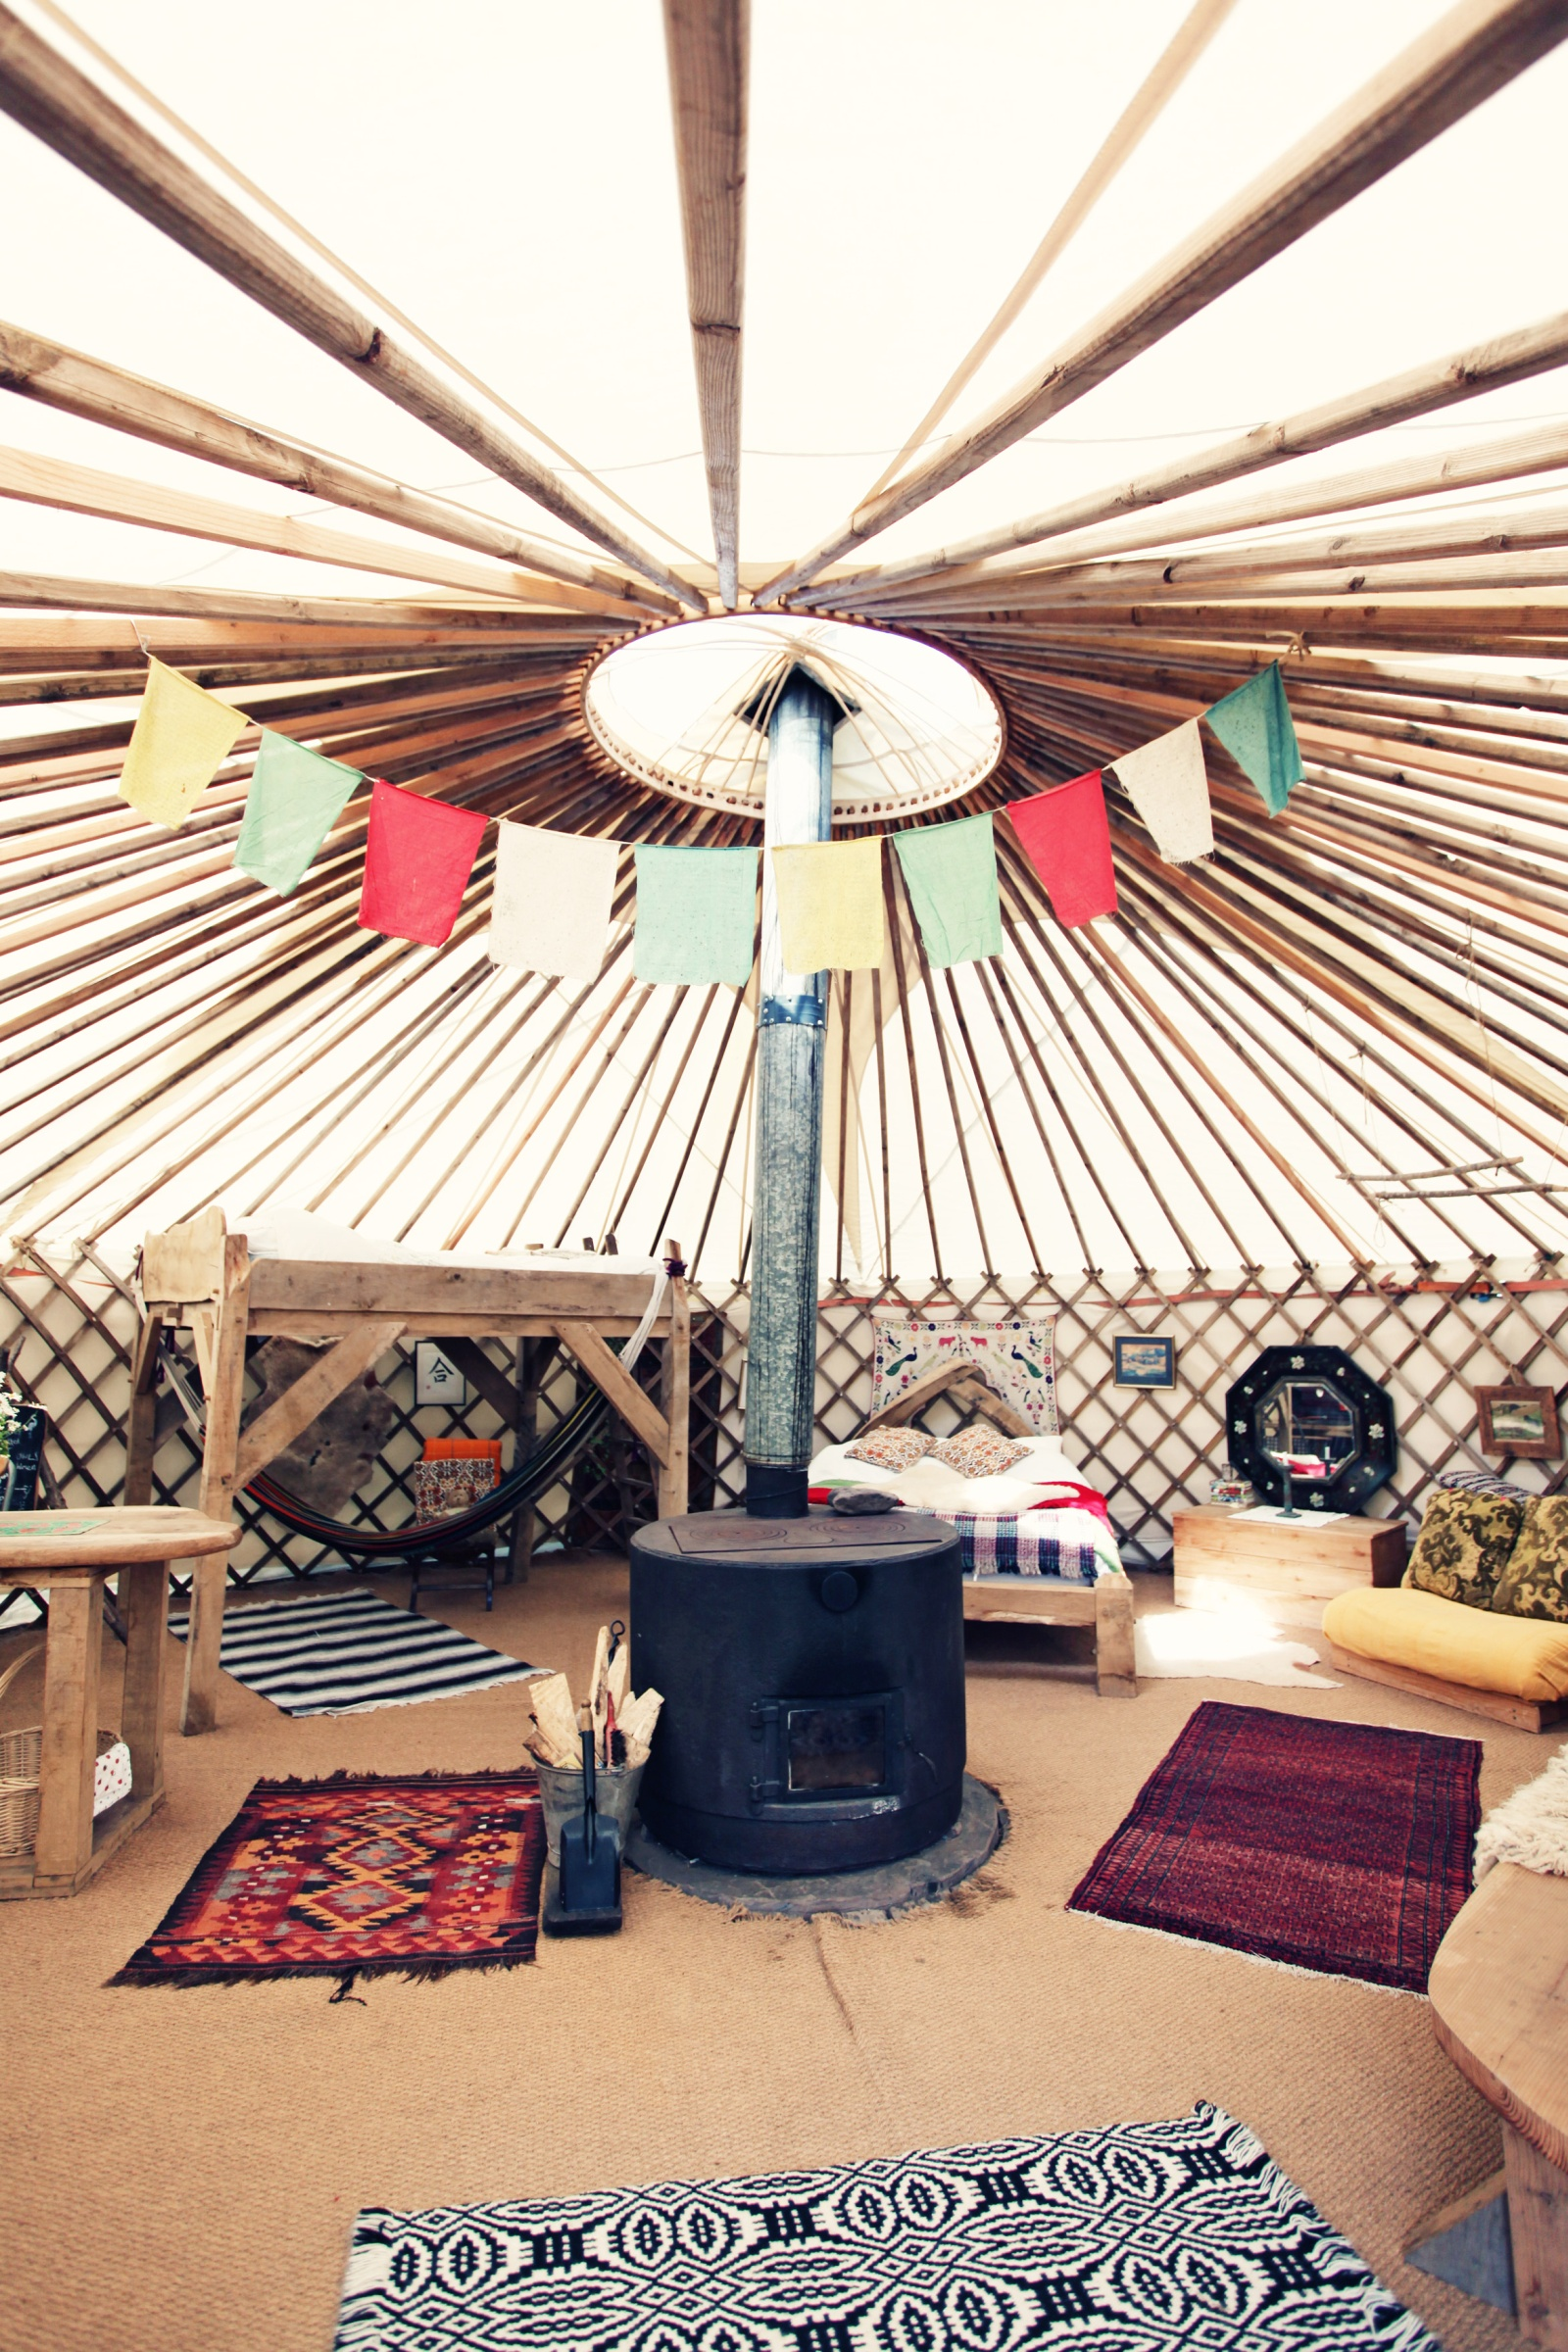 Black Mountains Yurt Traditional Eco Living In Wales